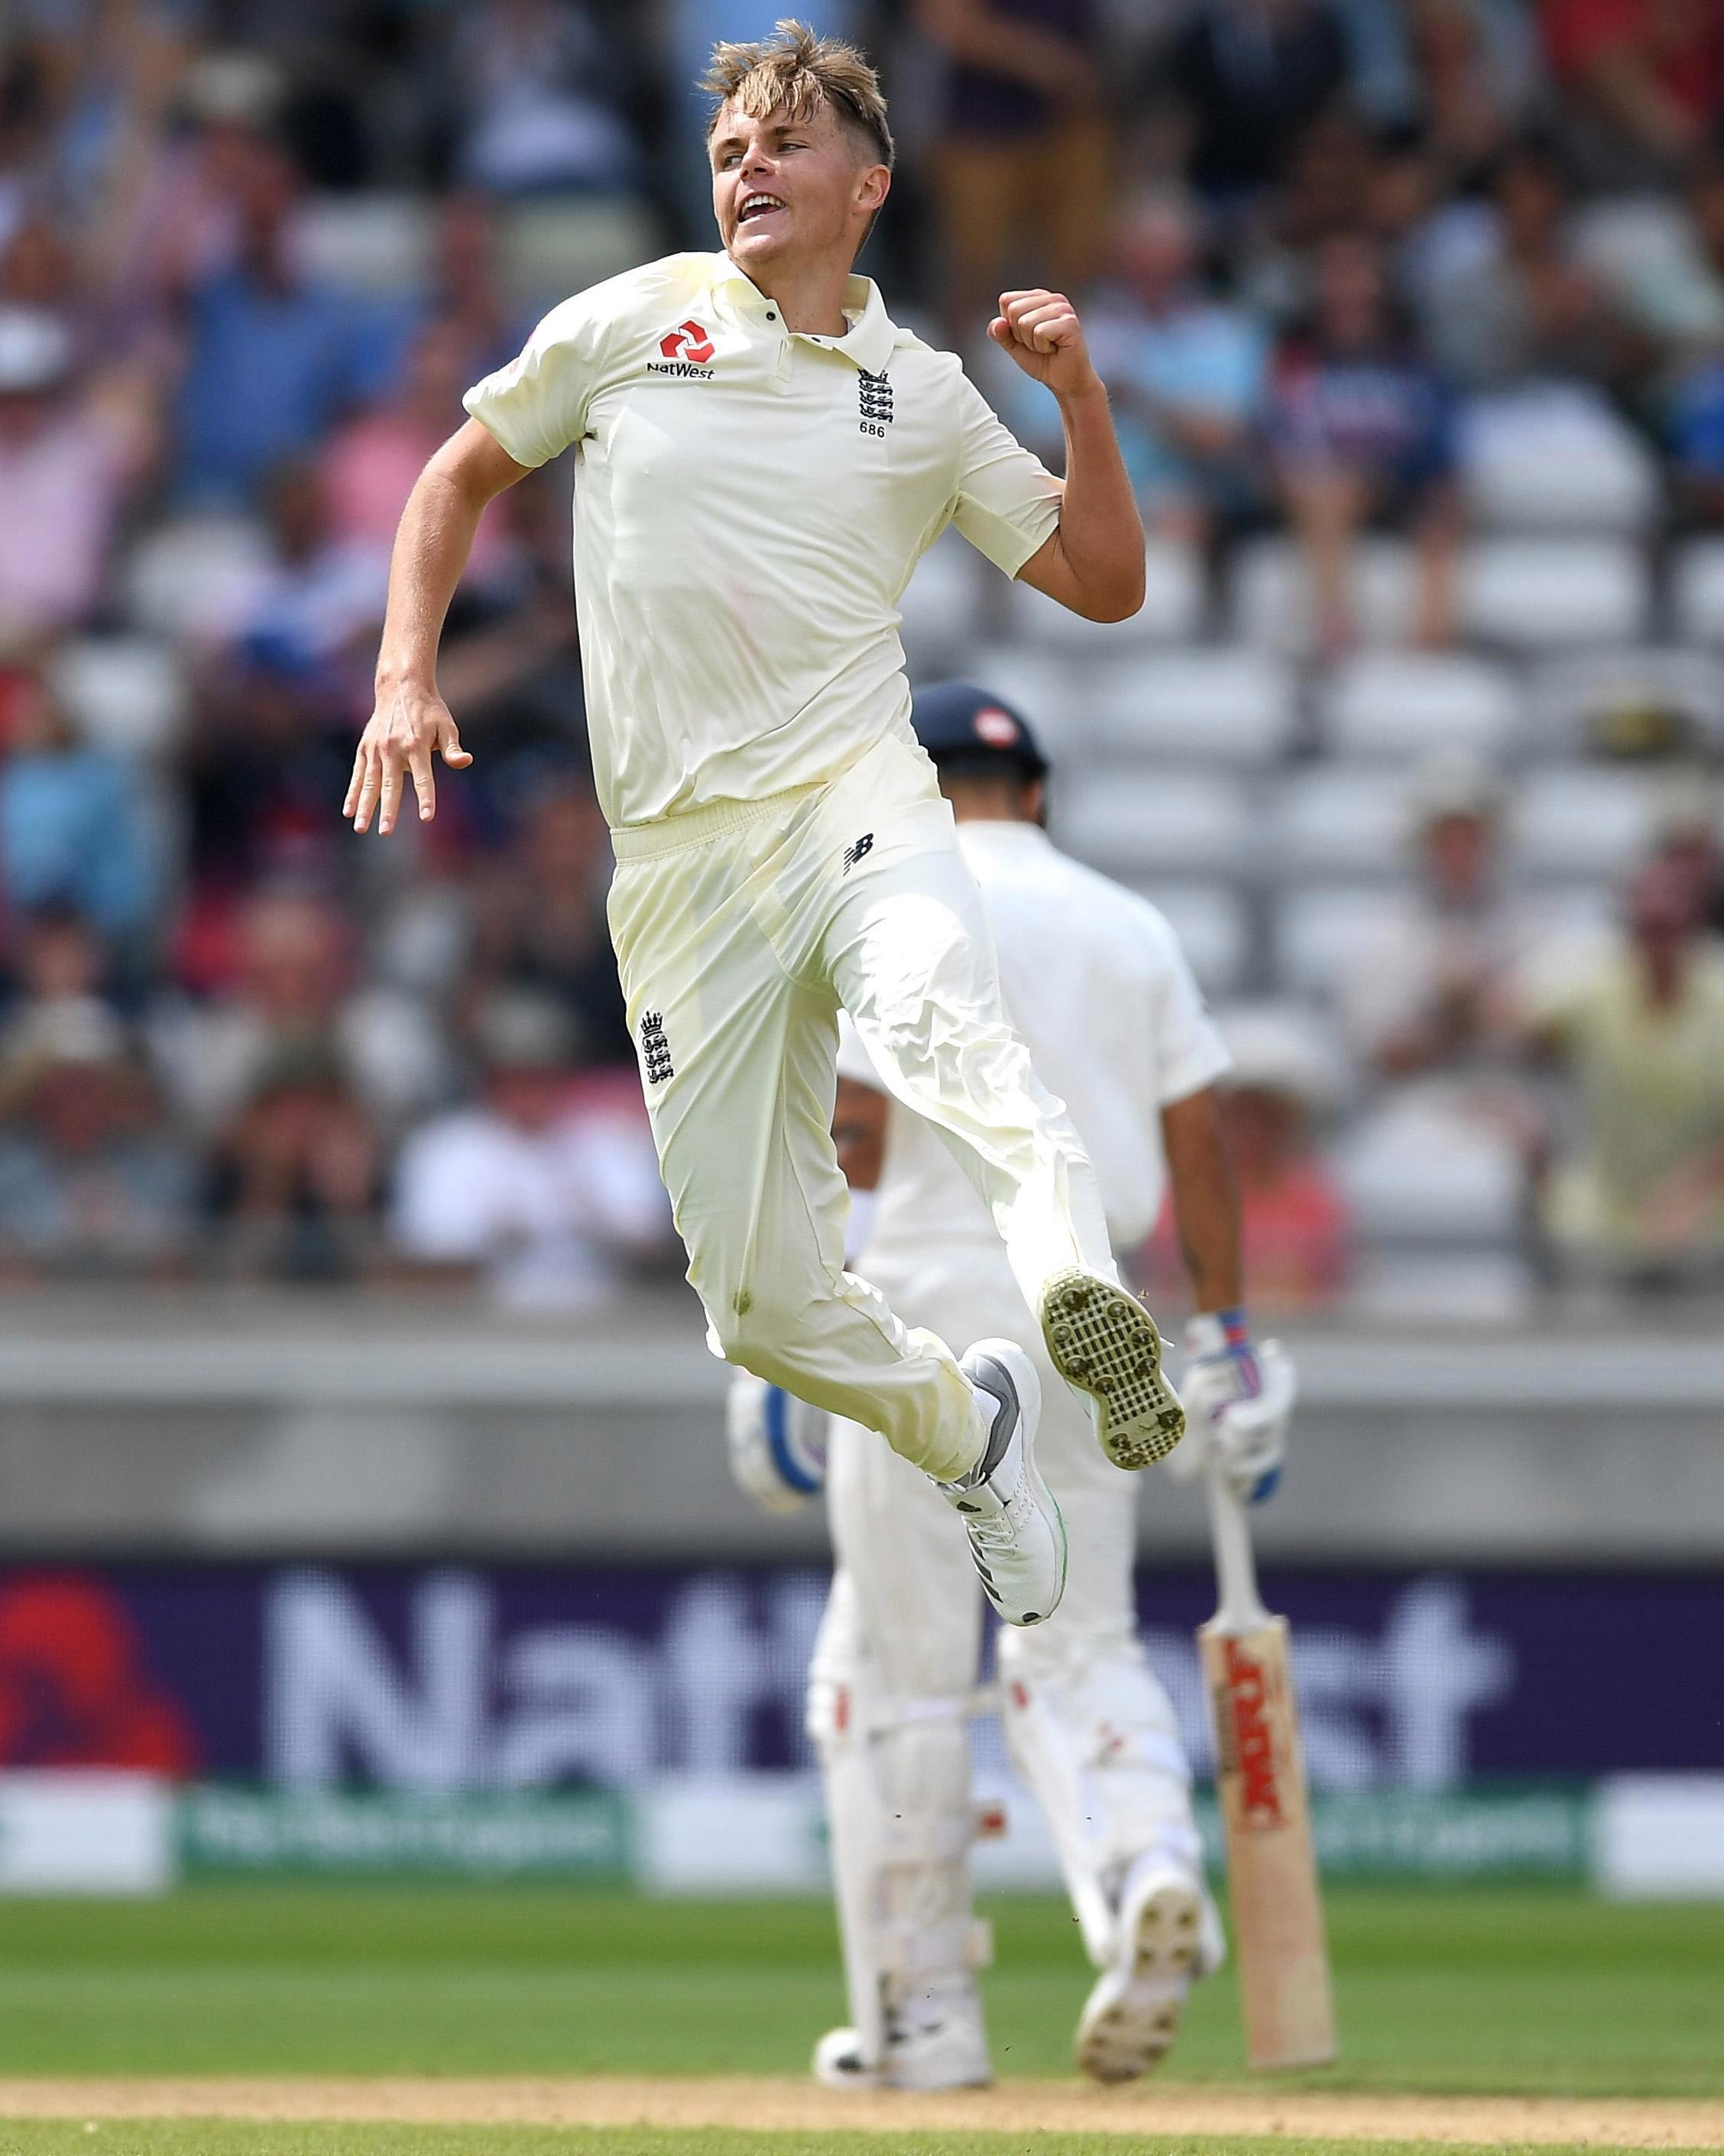 Sam Curran changed the game with three quick wickets for England